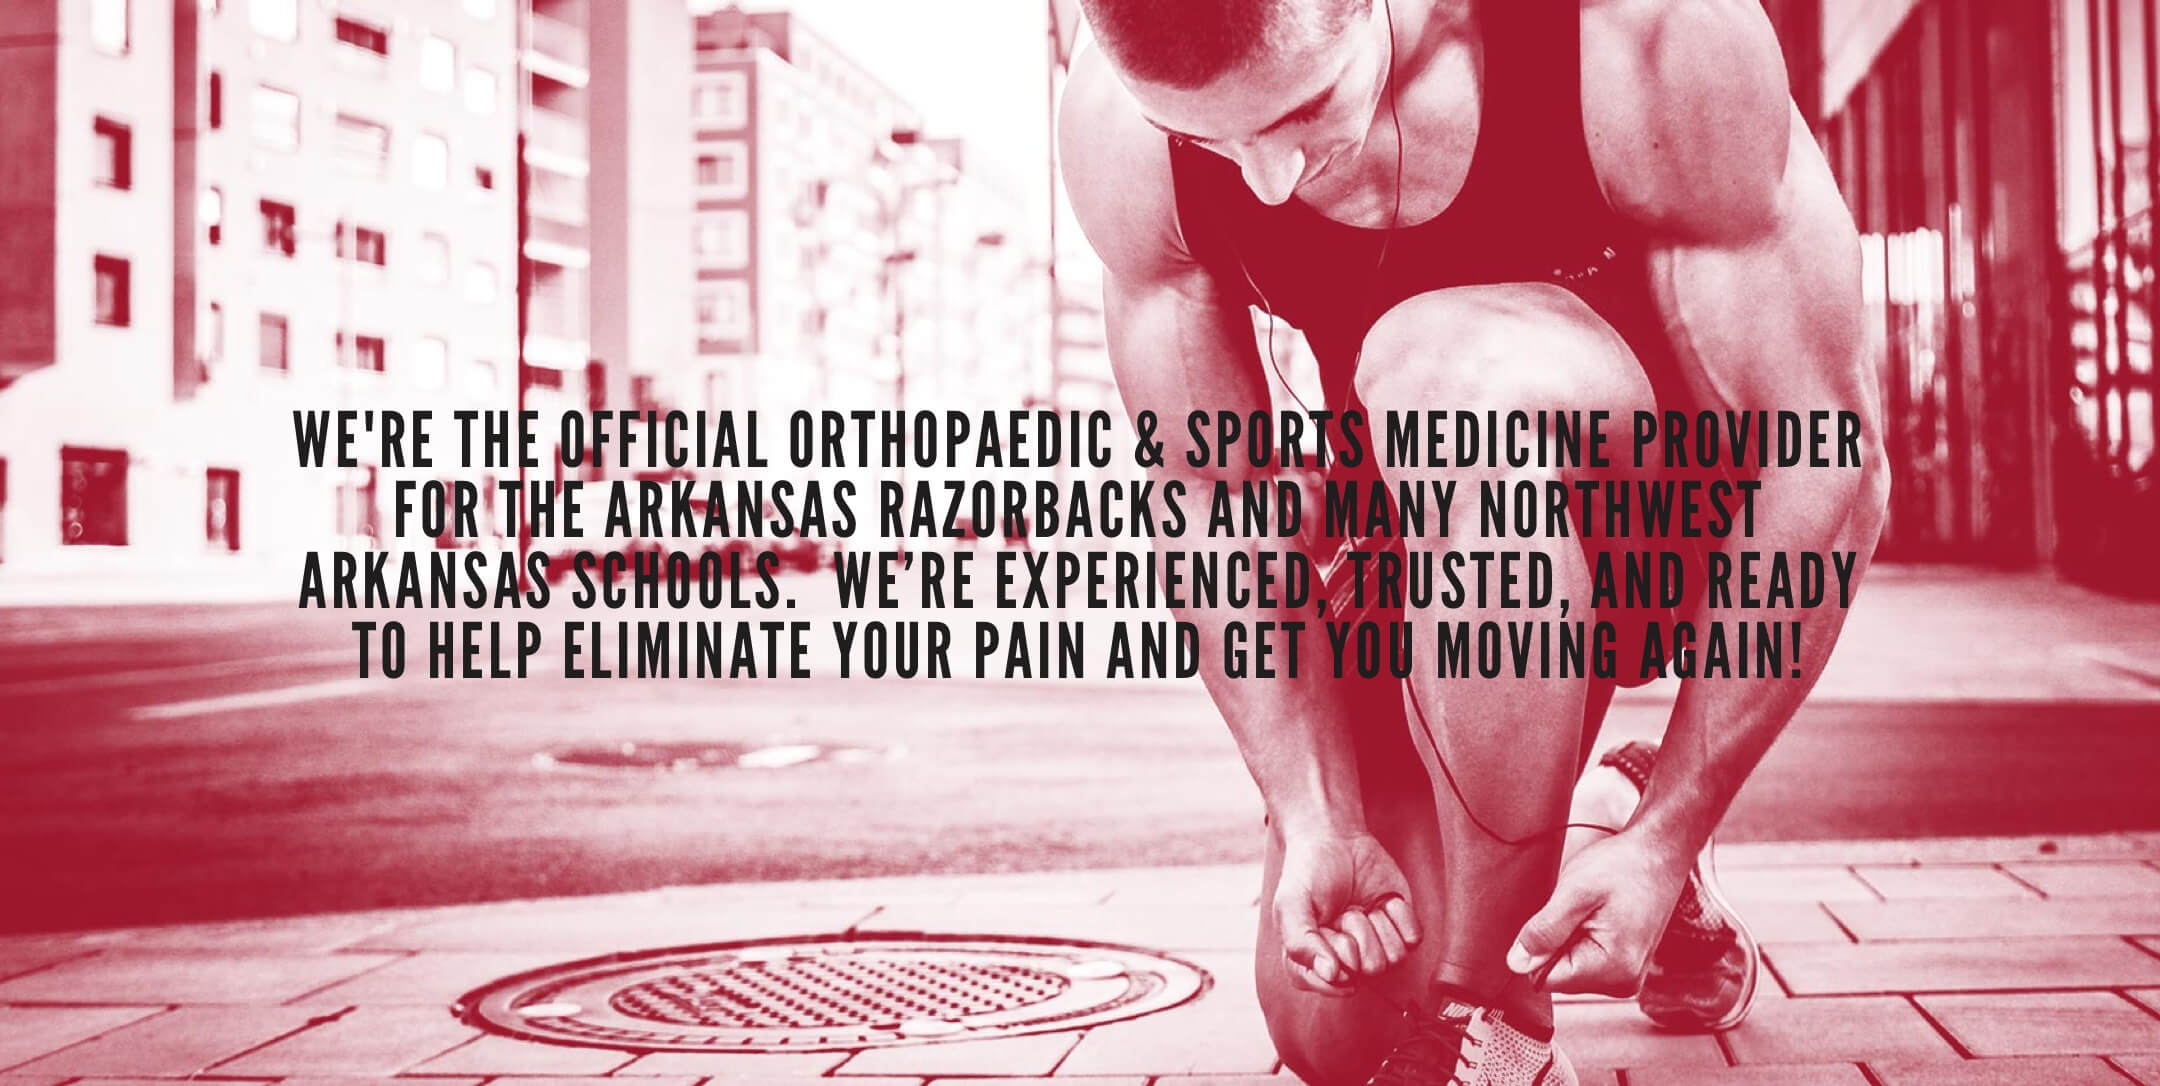 advanced orthopaedic specialists quote with photo background